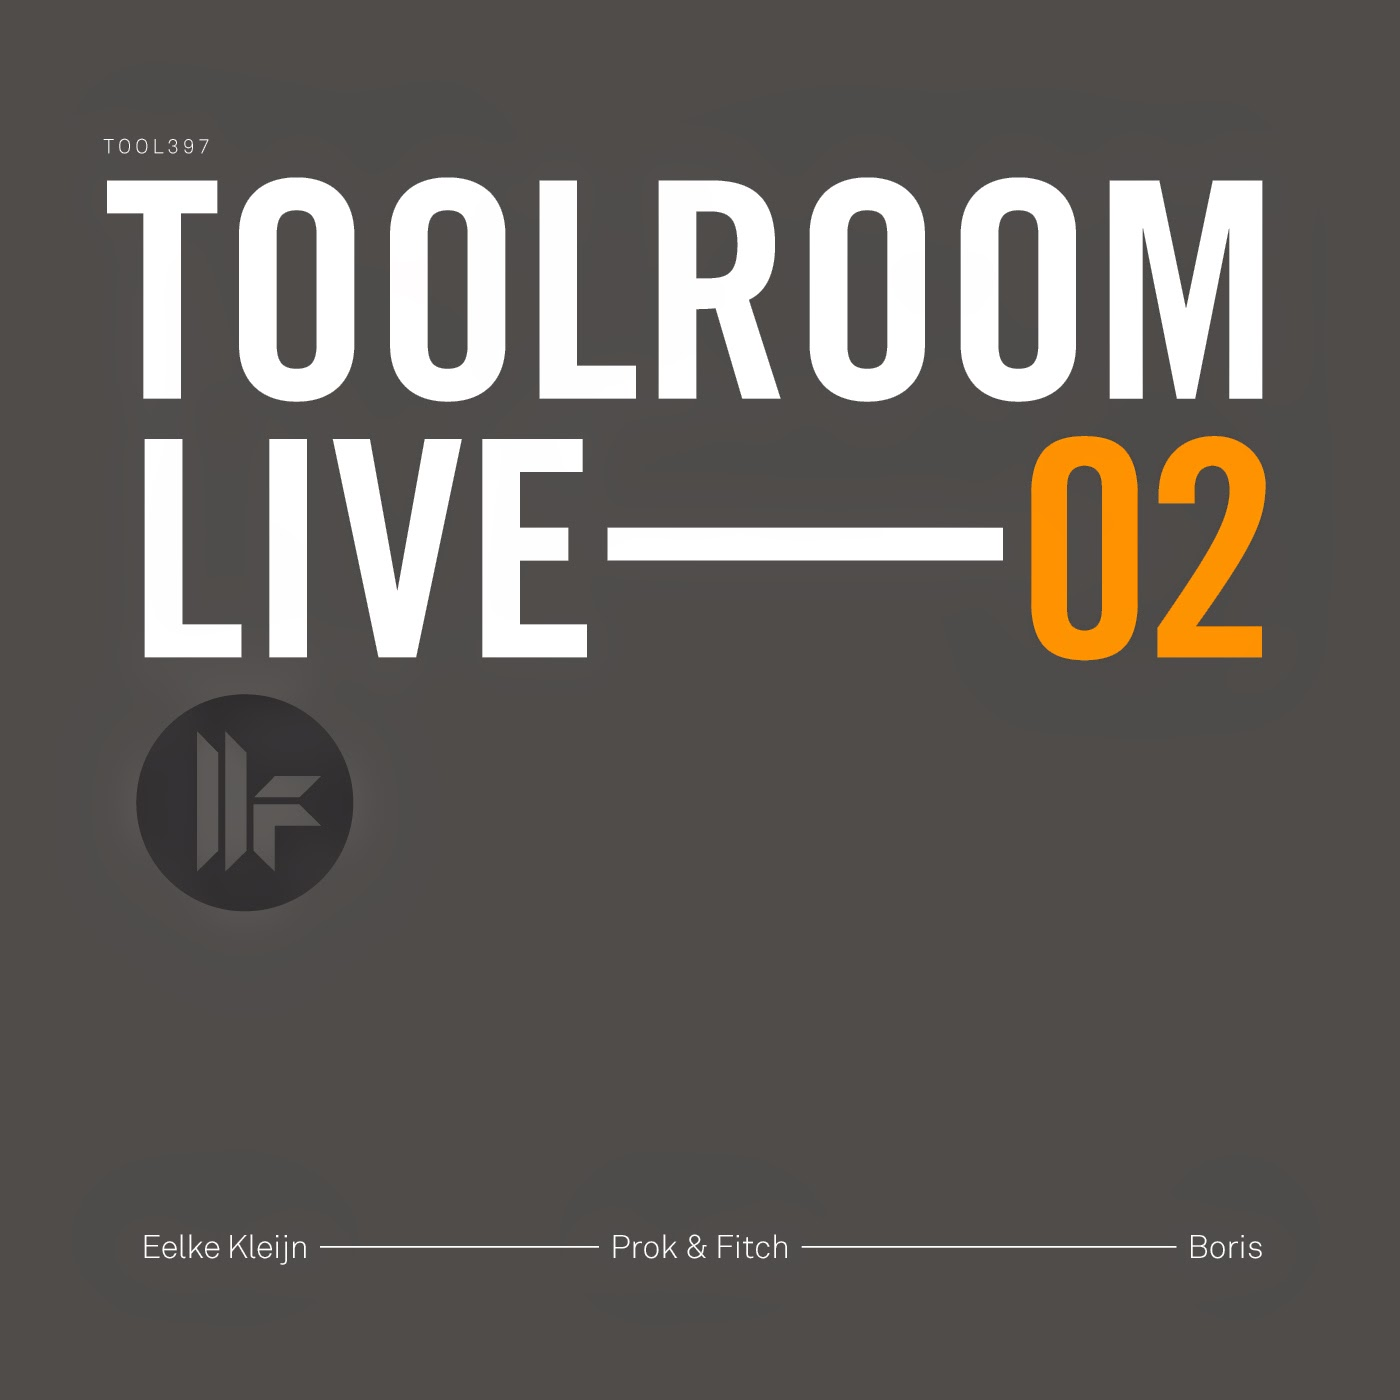 'TOOLROOM LIVE 02' MIXED BY EELKE KLEIJN, PROK & FITCH & BORIS